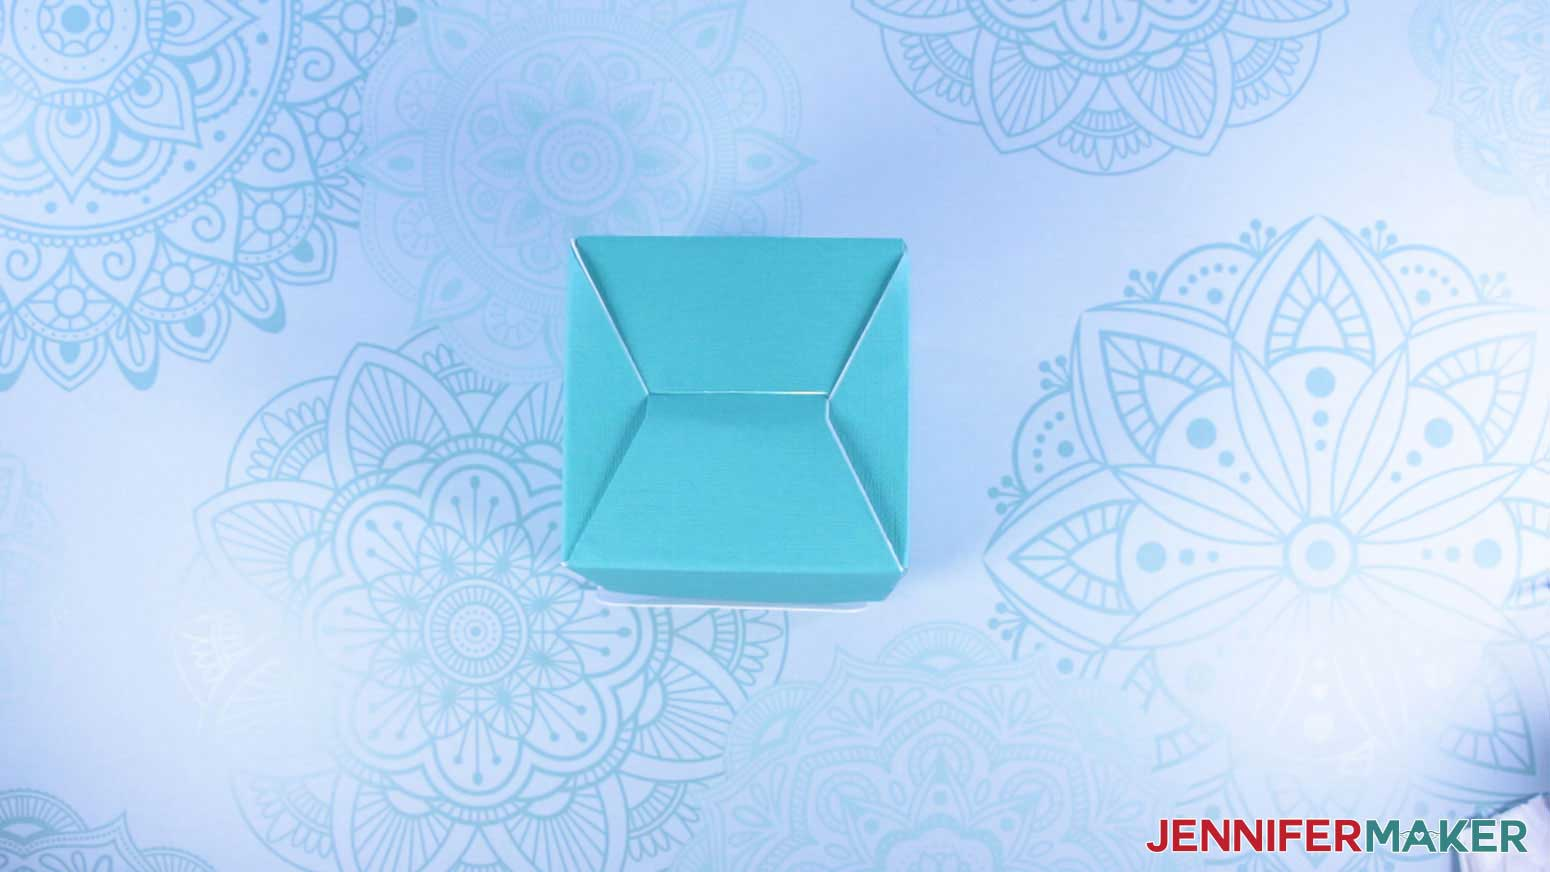 Bottom flaps on outside of mug gift boxes with a window